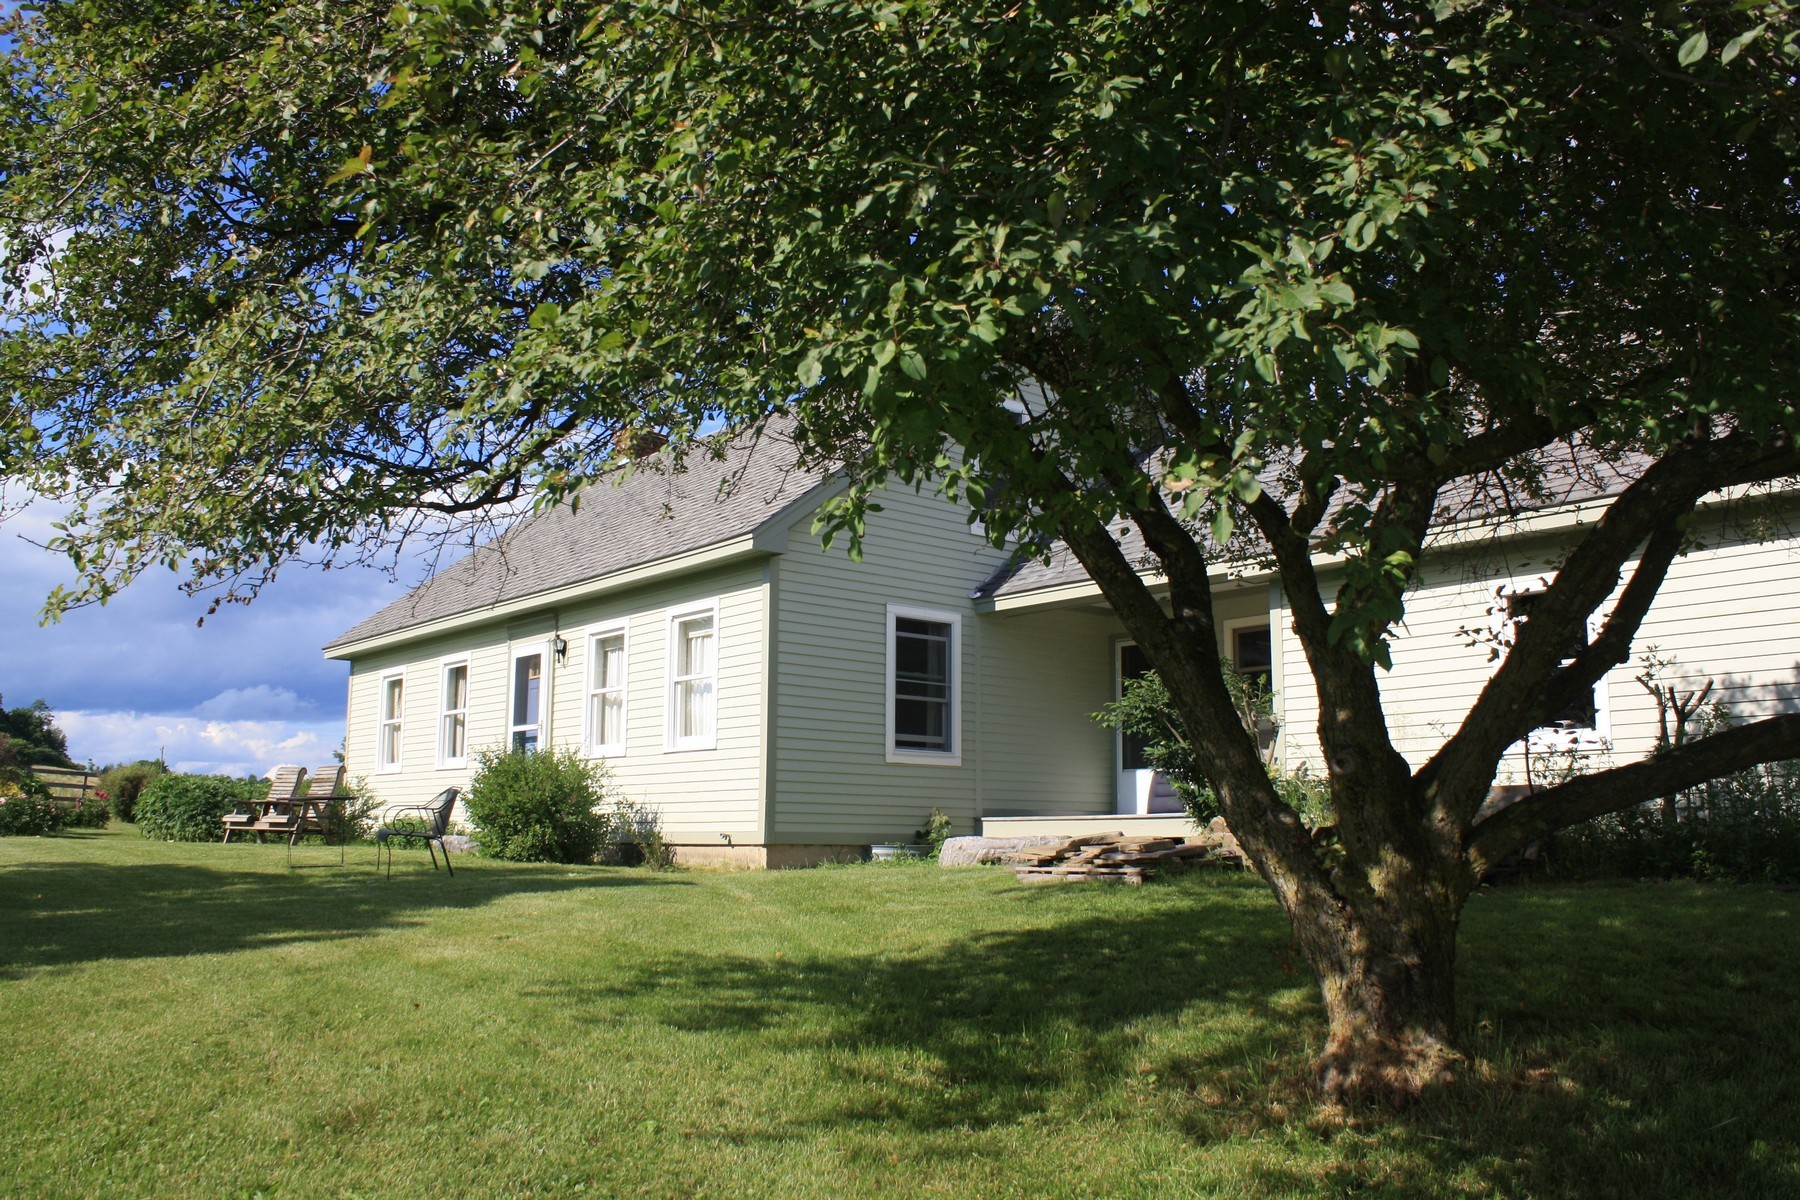 single family homes for Sale at 829 South Street, New Haven 829 South St New Haven, Vermont 05472 United States